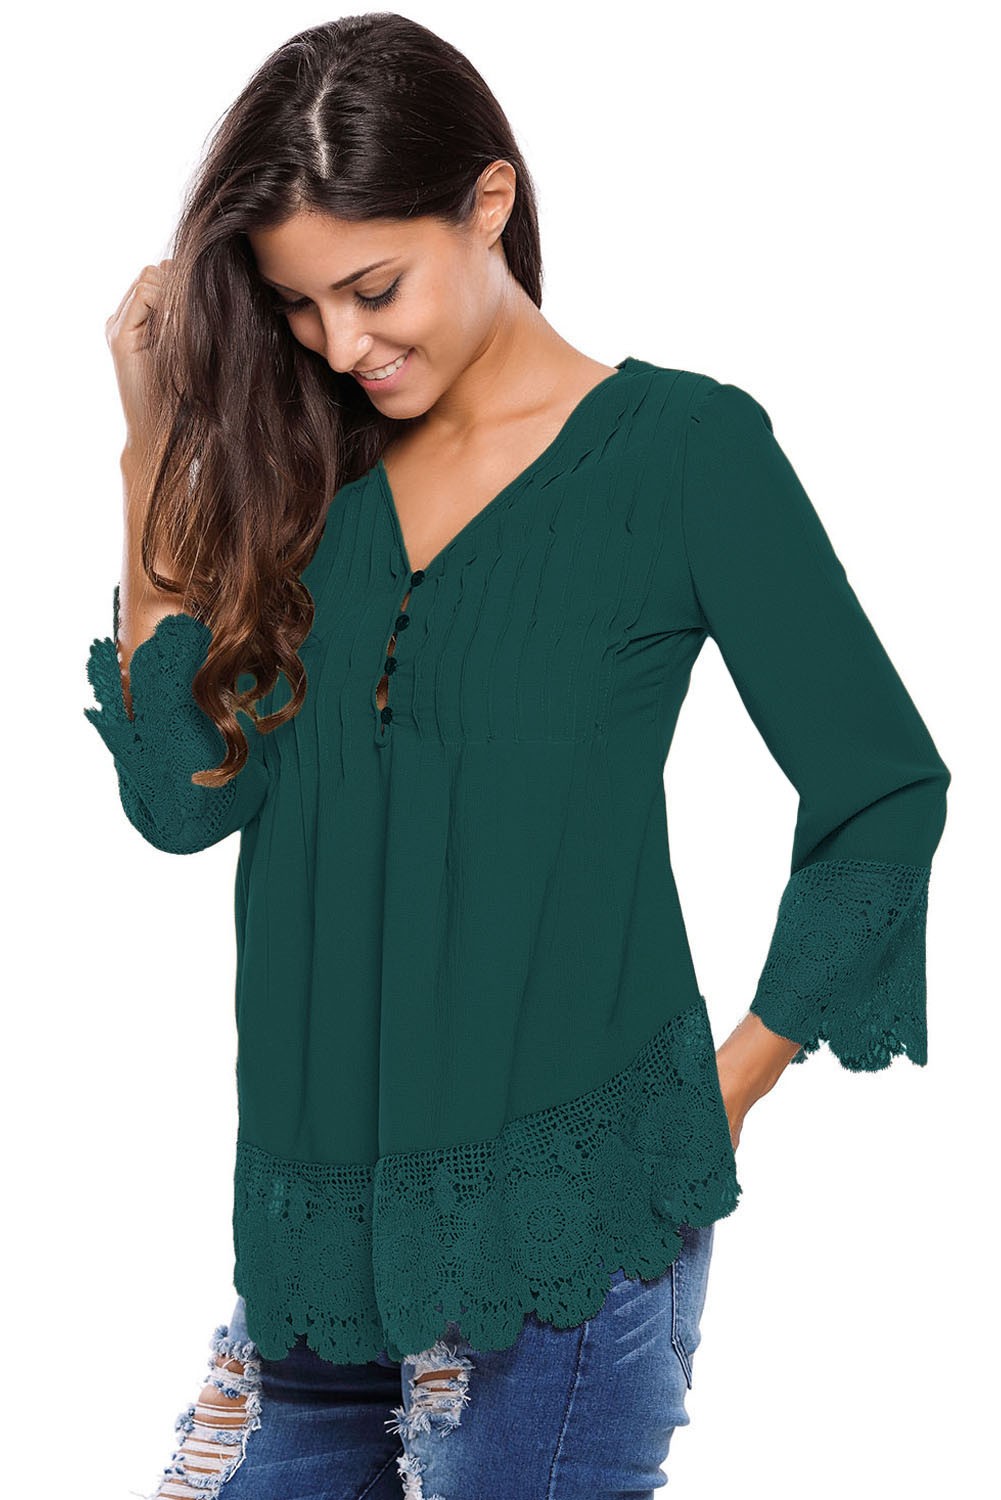 Lace detail button up sleeved blouse womens shirt autumn v for V neck button up shirt